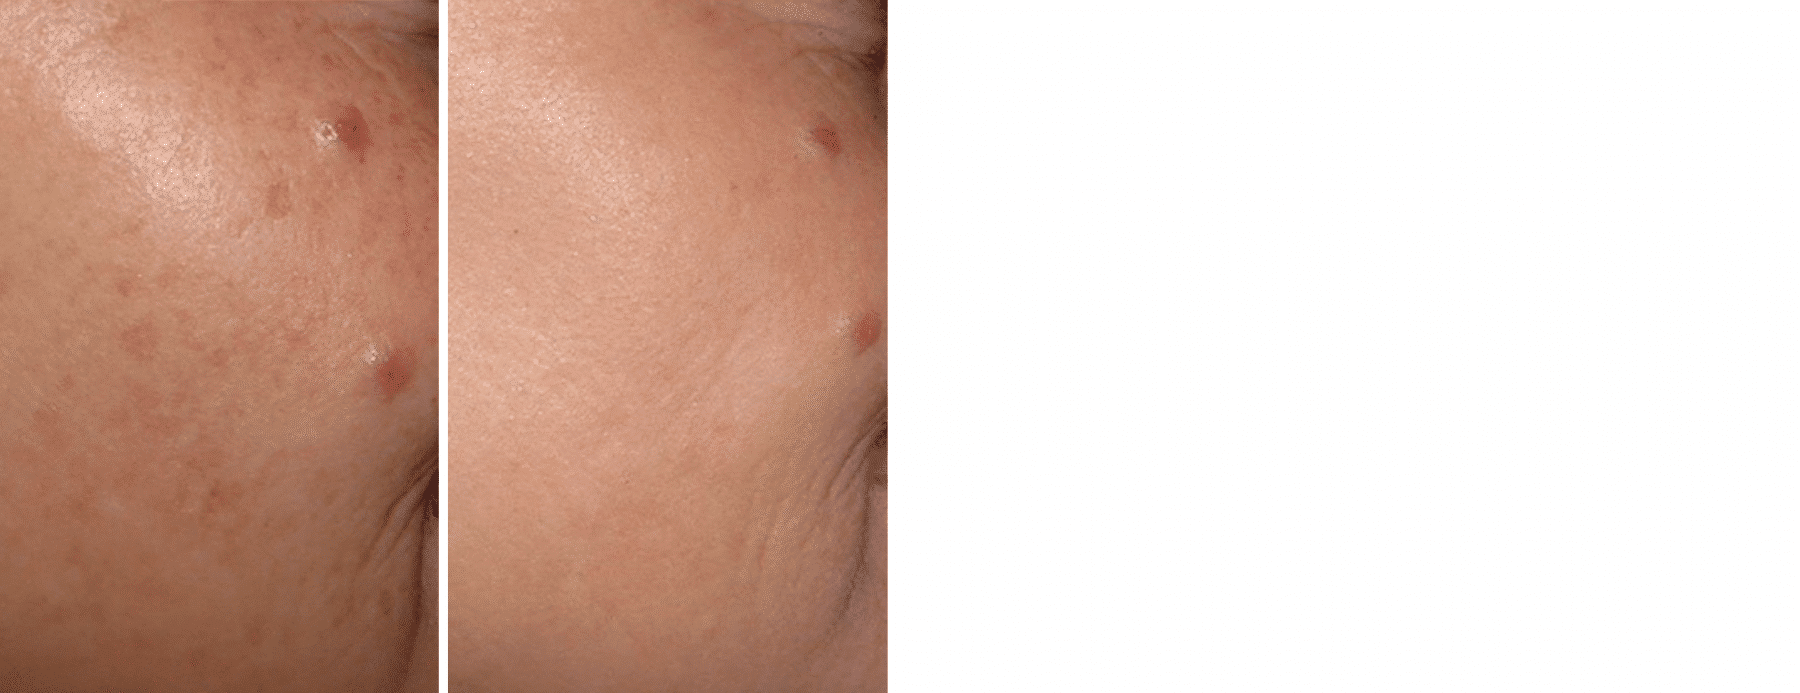 illumifacial before and after treatment results